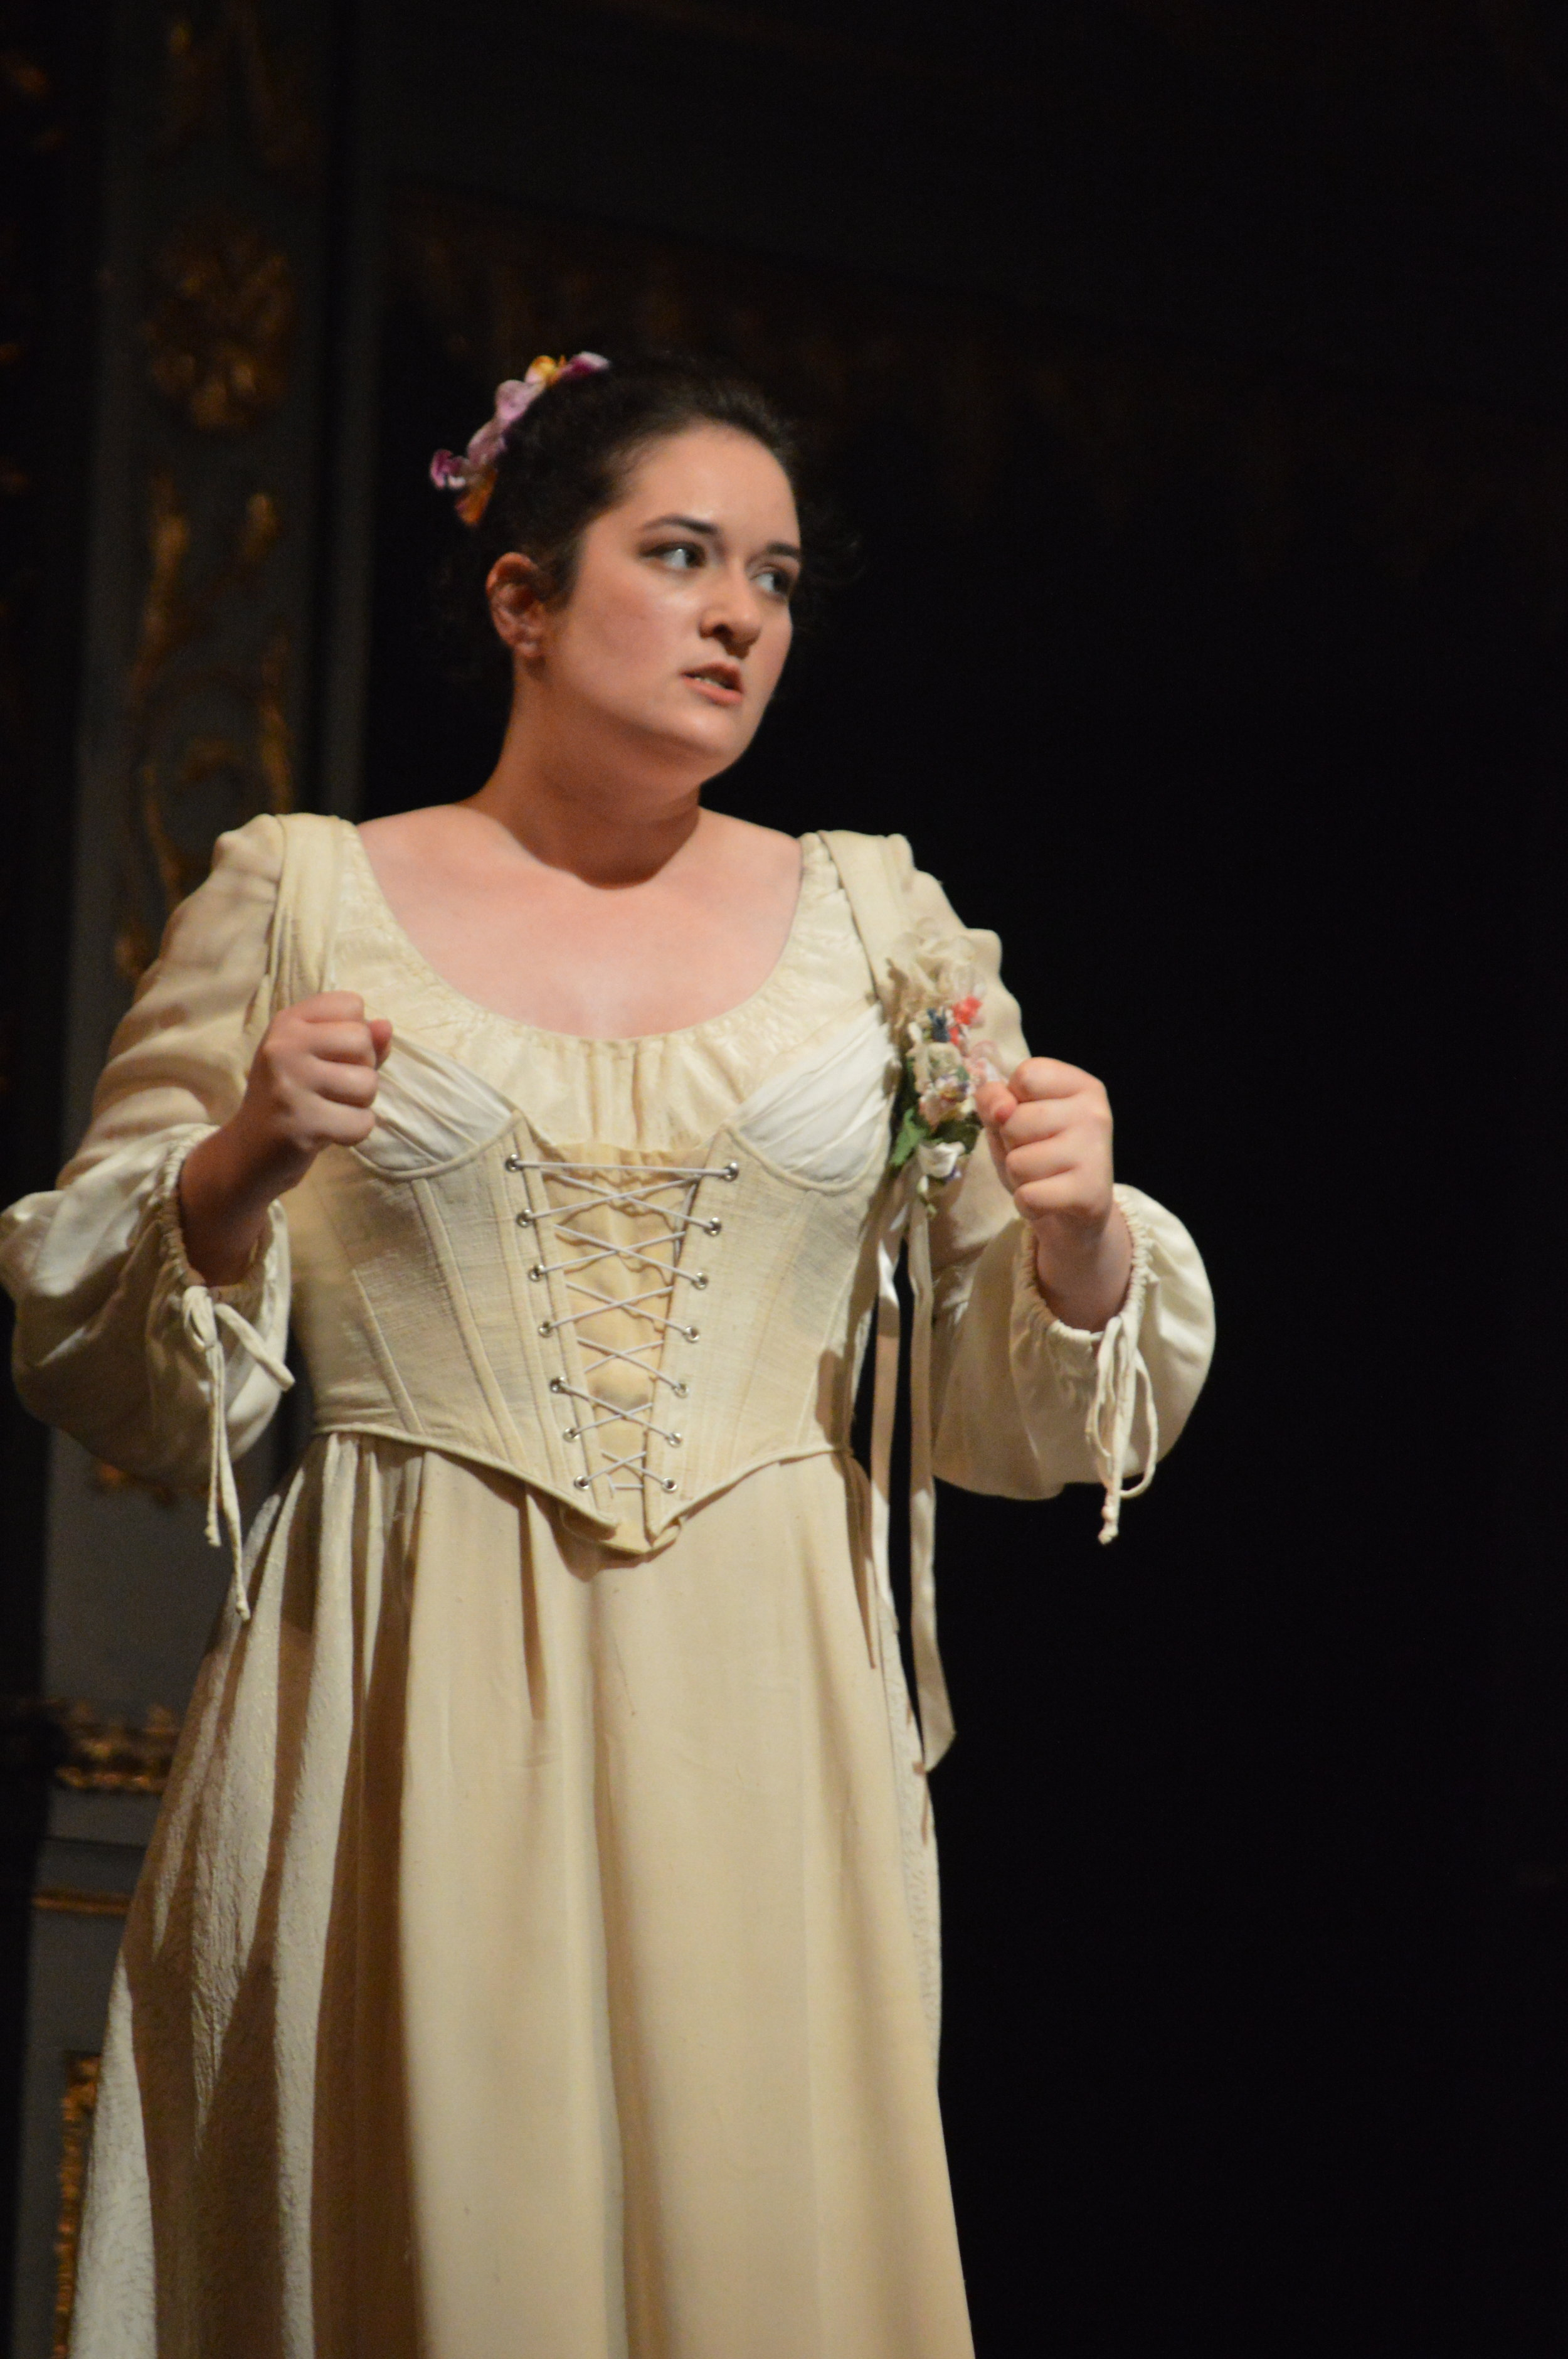 Zerlina in  Don Giovanni  with Prague Summer Nights, 2019 Production. Copyright Classical Movements The performances were made possible through the support of the Opera of the National Theatre, who have provided the set and costumes. Scenographer: Josef Svoboda; Costume designer: Eva Farkašová-Zálešáková Conducted by John Nardolillo; Directed by Pat Diamond